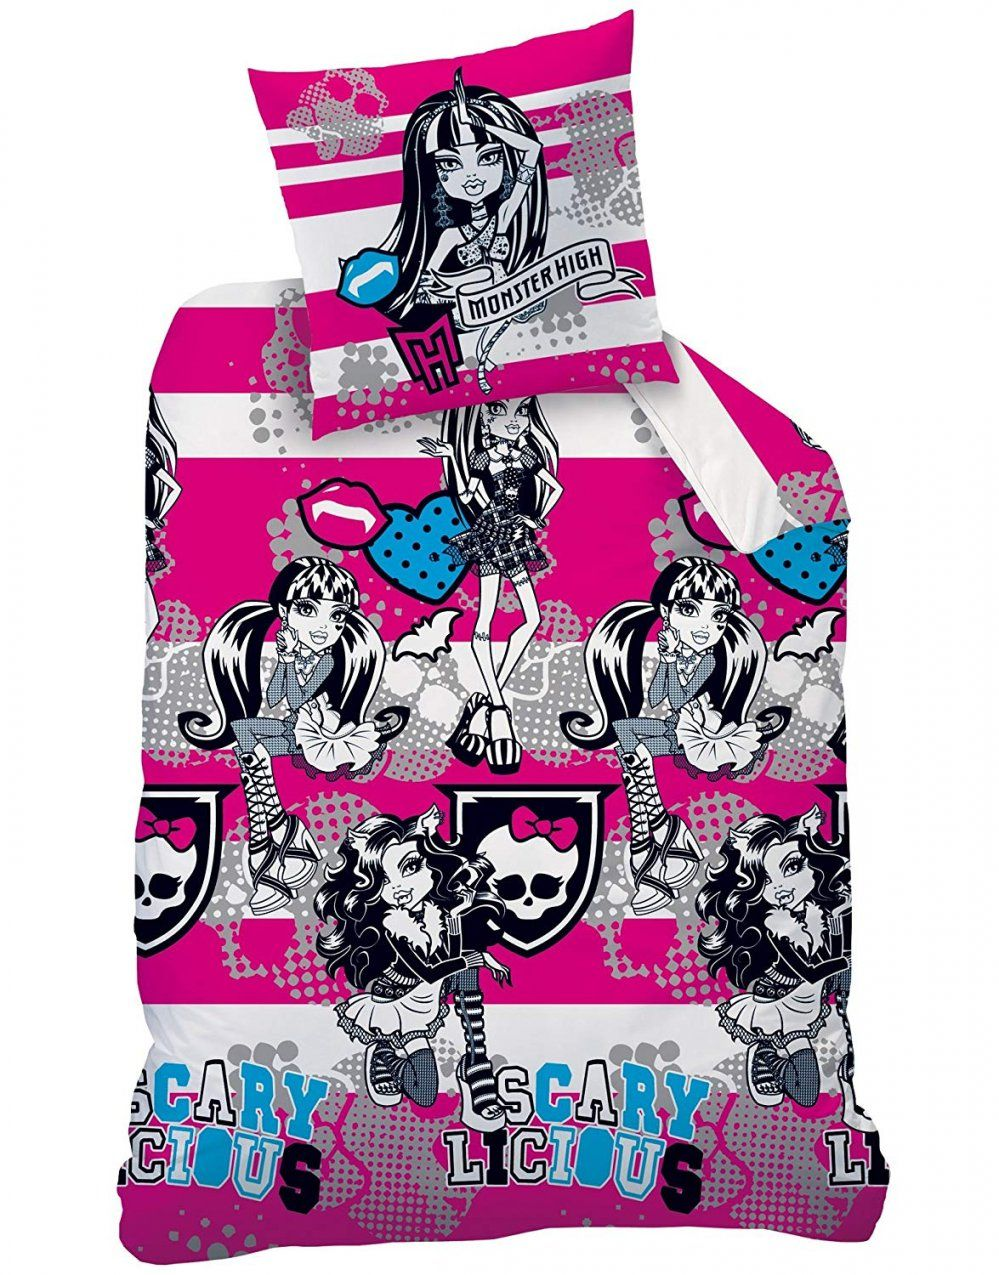 Wo Monster High Bettwaesche Set Zu Kaufen  Dibinekadar Decoration von Monster High Bettwäsche Biber Bild